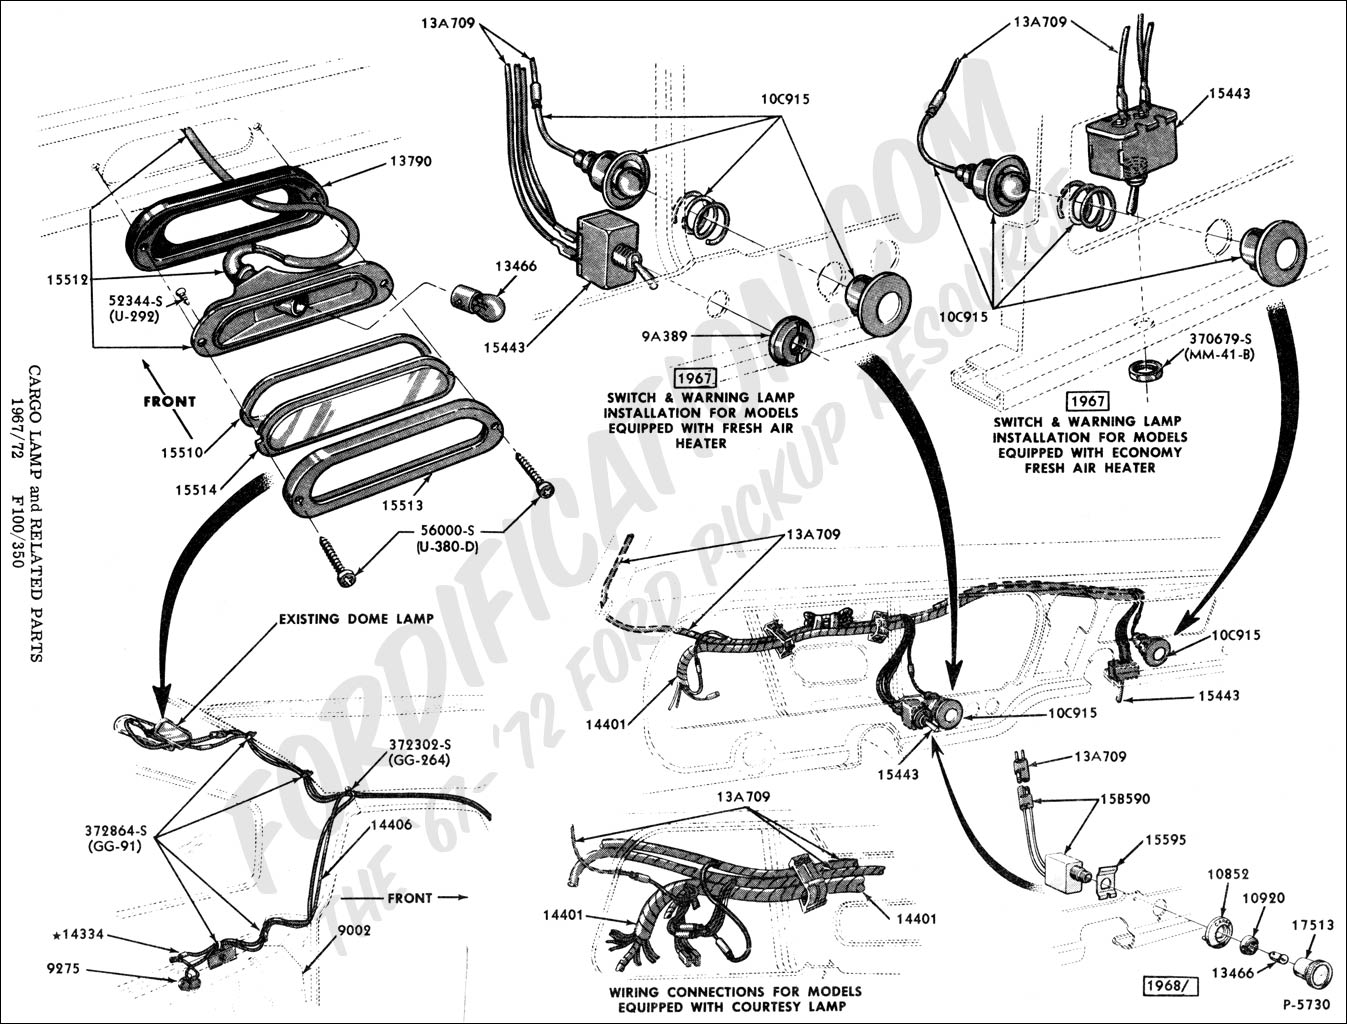 1972 Super Beetle Heater Diagram in addition 73 Vw Bug Engine Schematics also 5wsms Ford F100 When Try Start 67 Ford Pickup No Action in addition 1973 Ford F100 Fuse Box together with 70 Chevy Truck Turn Signal Wiring Diagram. on 69 vw beetle wiring diagram